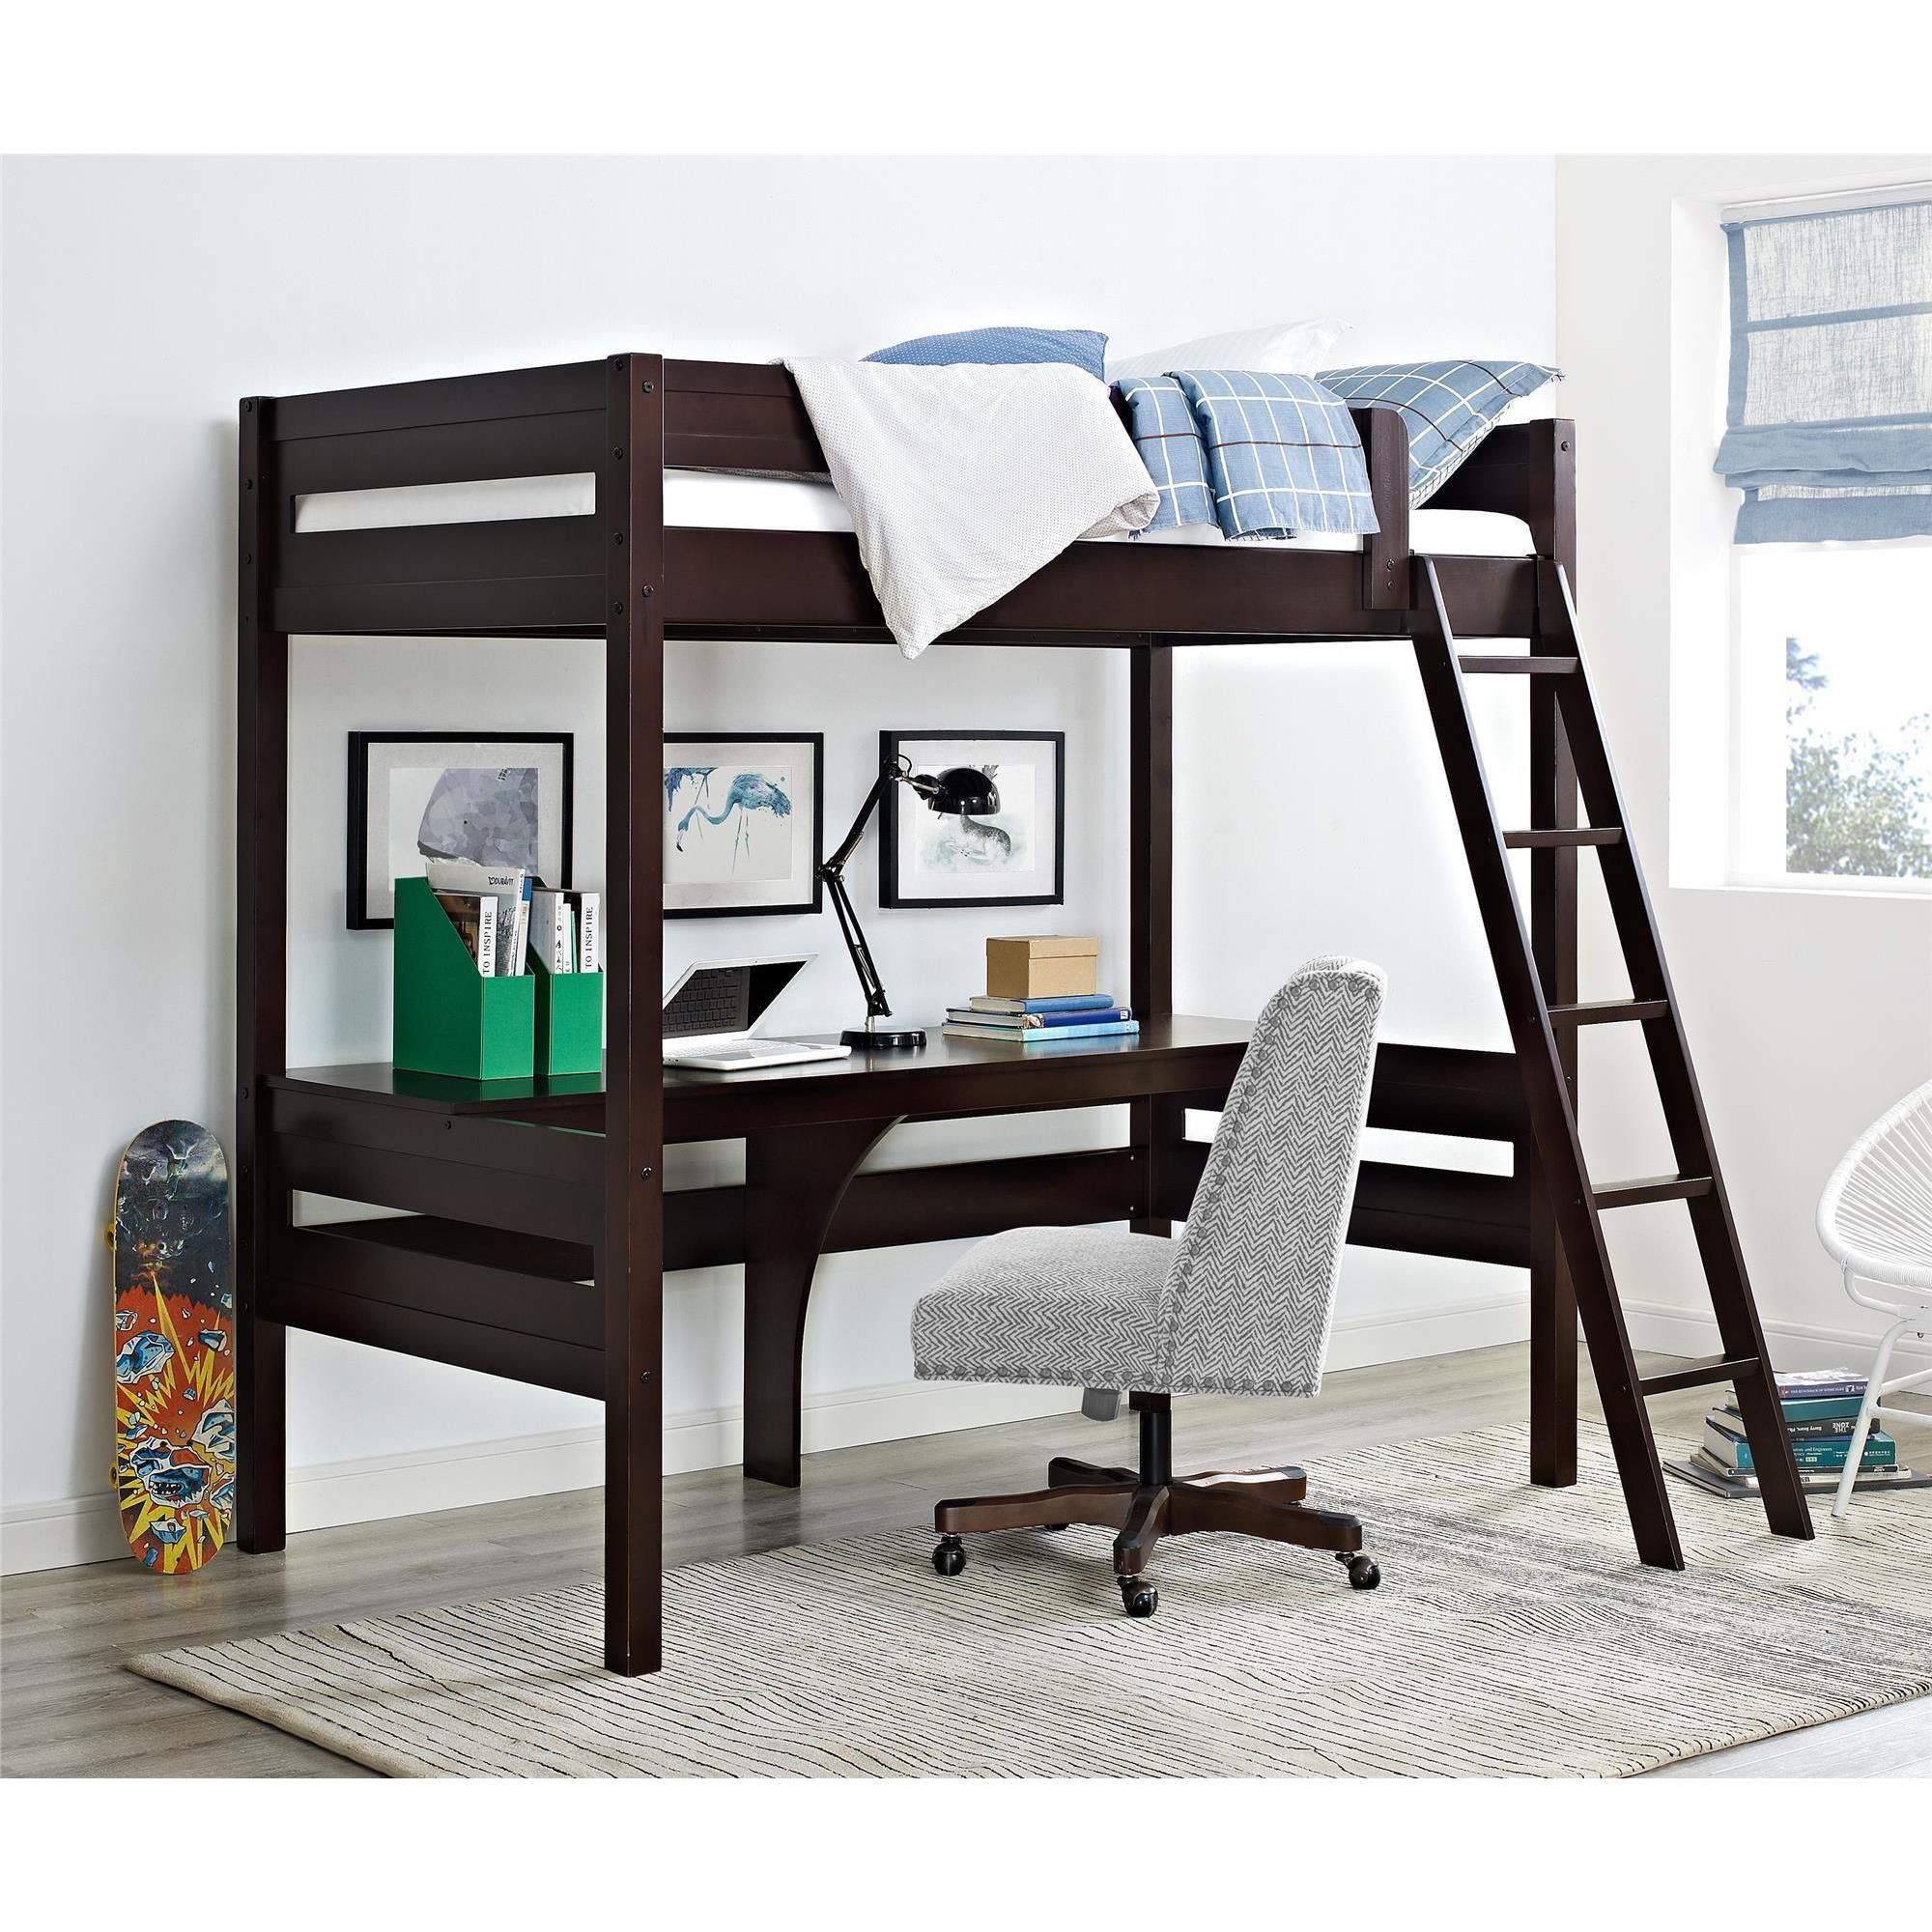 Loft bed with desk full size  Dorel Living Harlan Loft Bed with Desk Loft bed espresso Brown